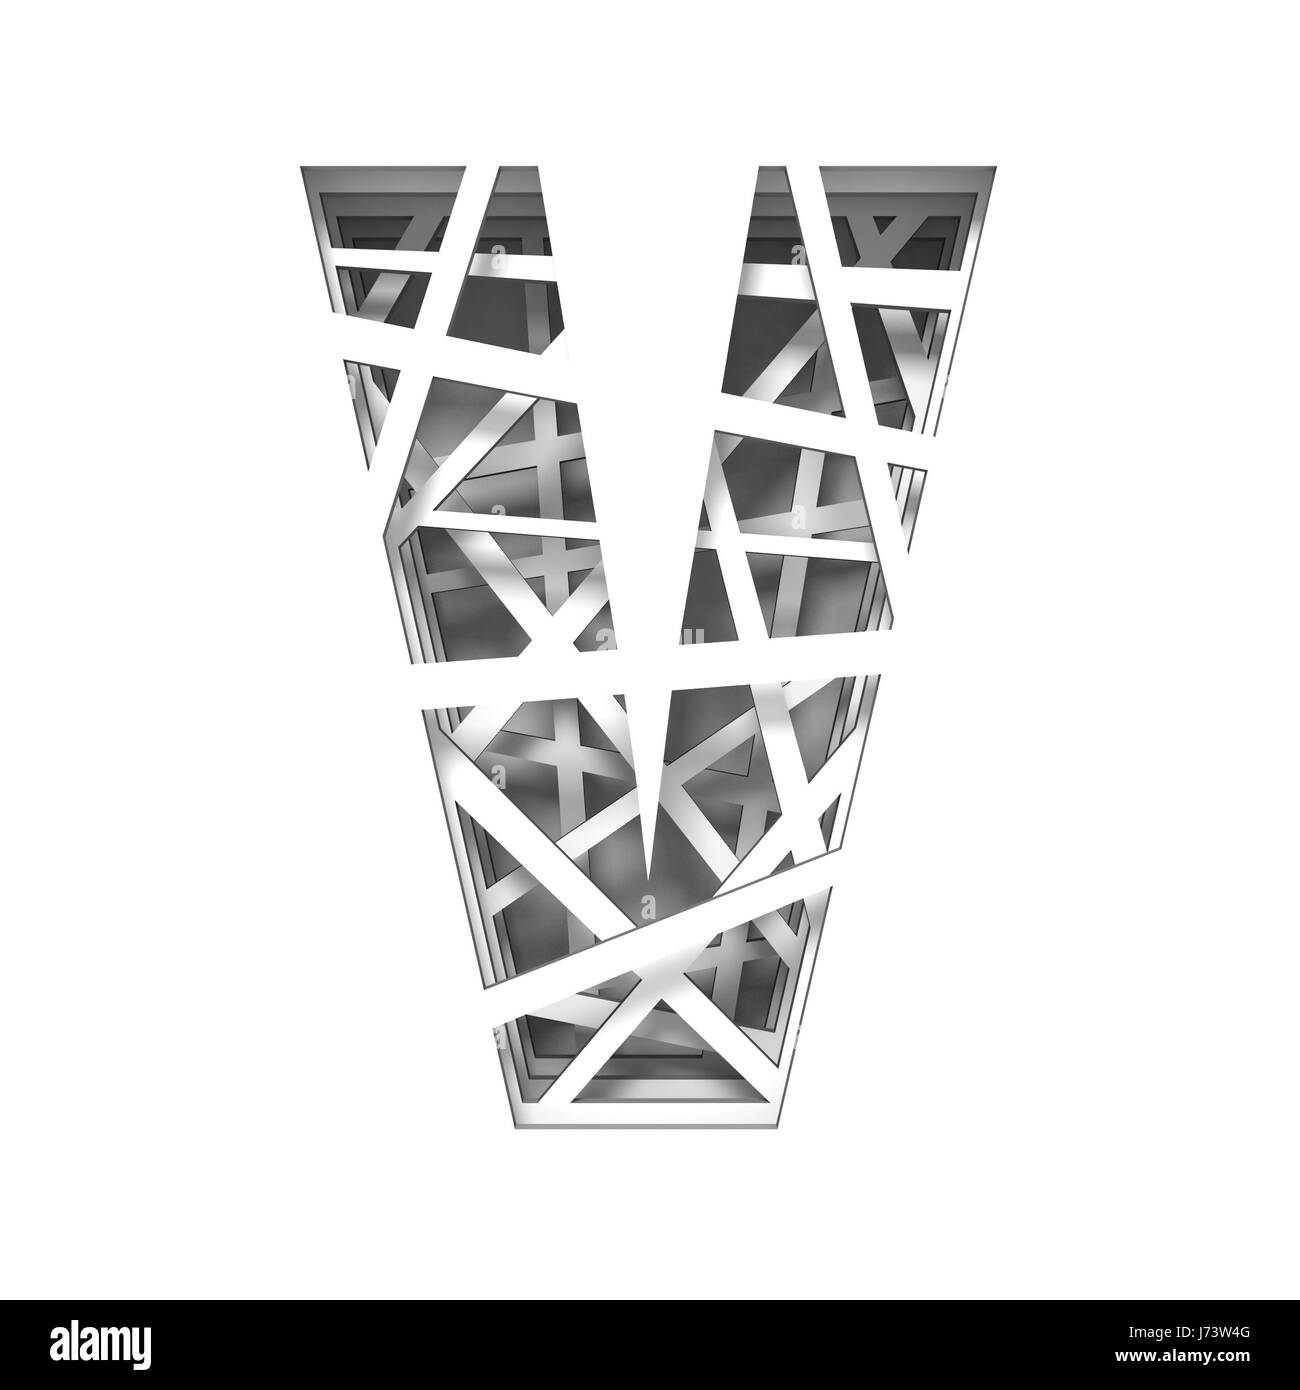 Paper cut out font letter v 3d render illustration isolated on white paper cut out font letter v 3d render illustration isolated on white background spiritdancerdesigns Image collections